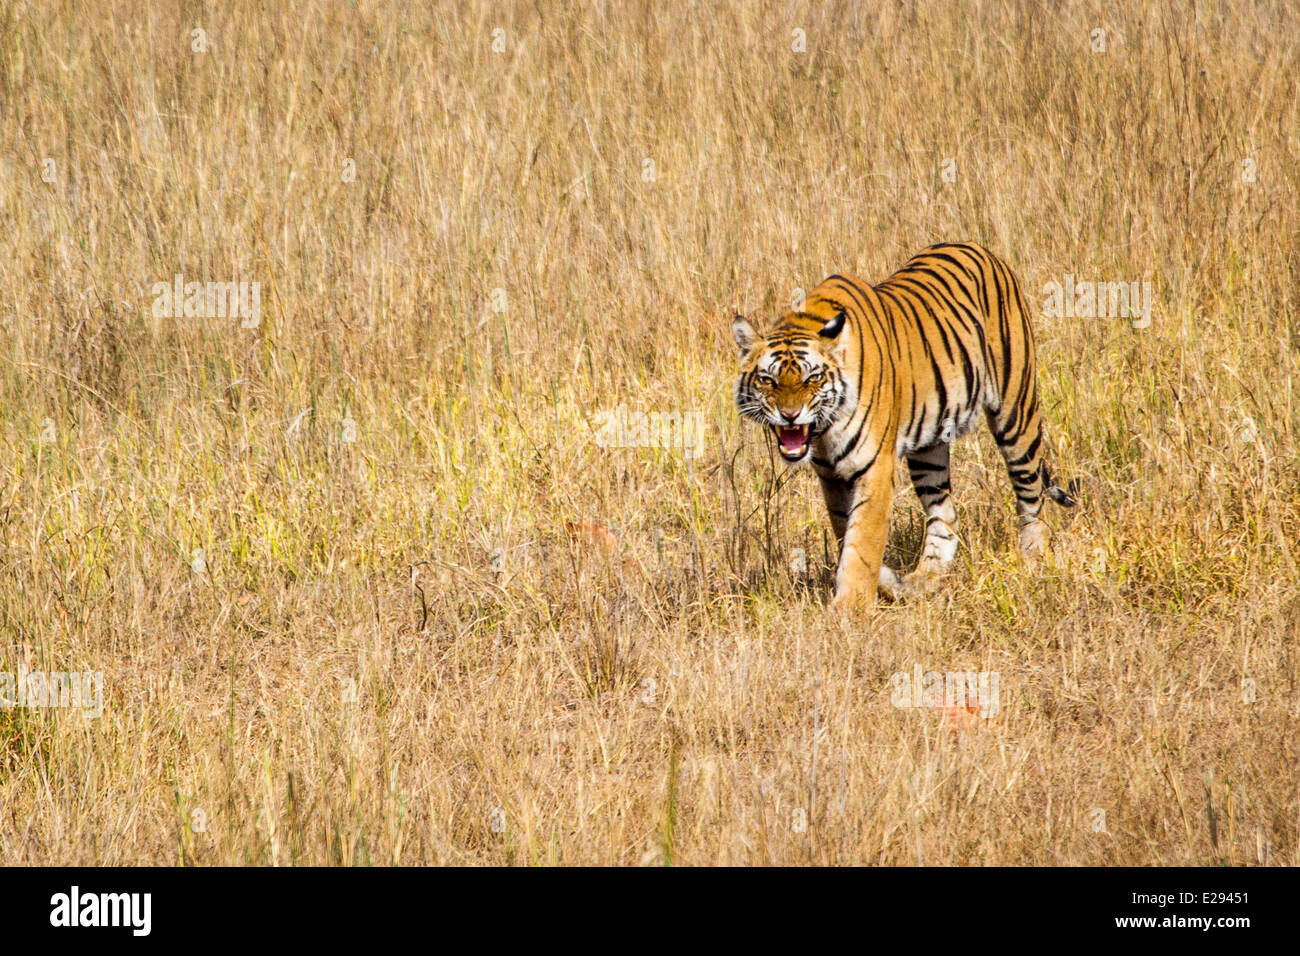 Tiger walking towards, snarling, Bandhavgarh National Park Madhya Pradesh India Asia - Stock Image